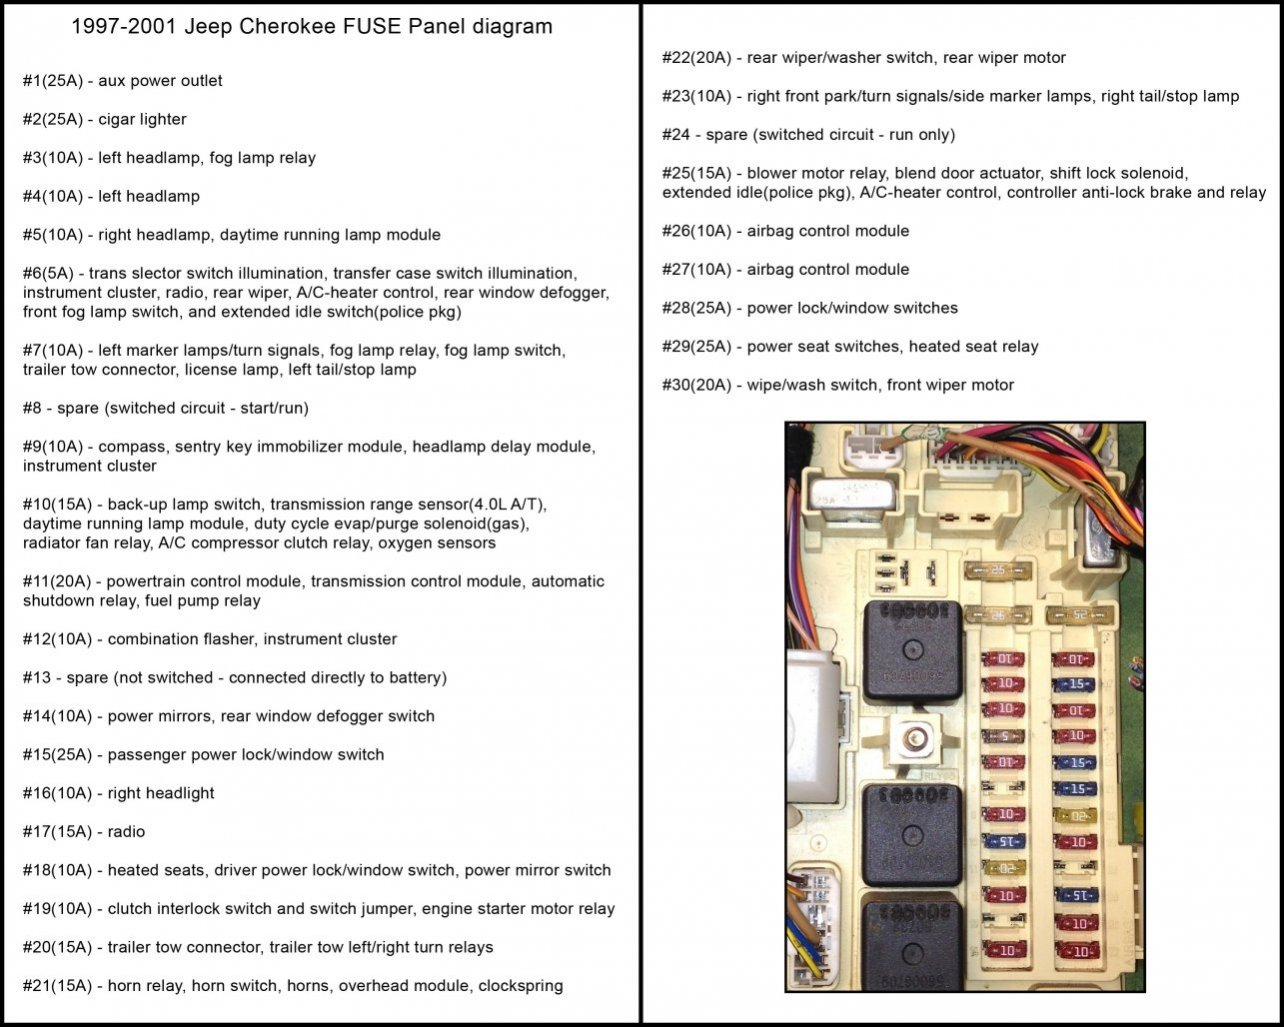 hight resolution of 2001 jeep cherokee classic fuse diagram anyone jeep cherokee forum01 jeep cherokee fuse diagram